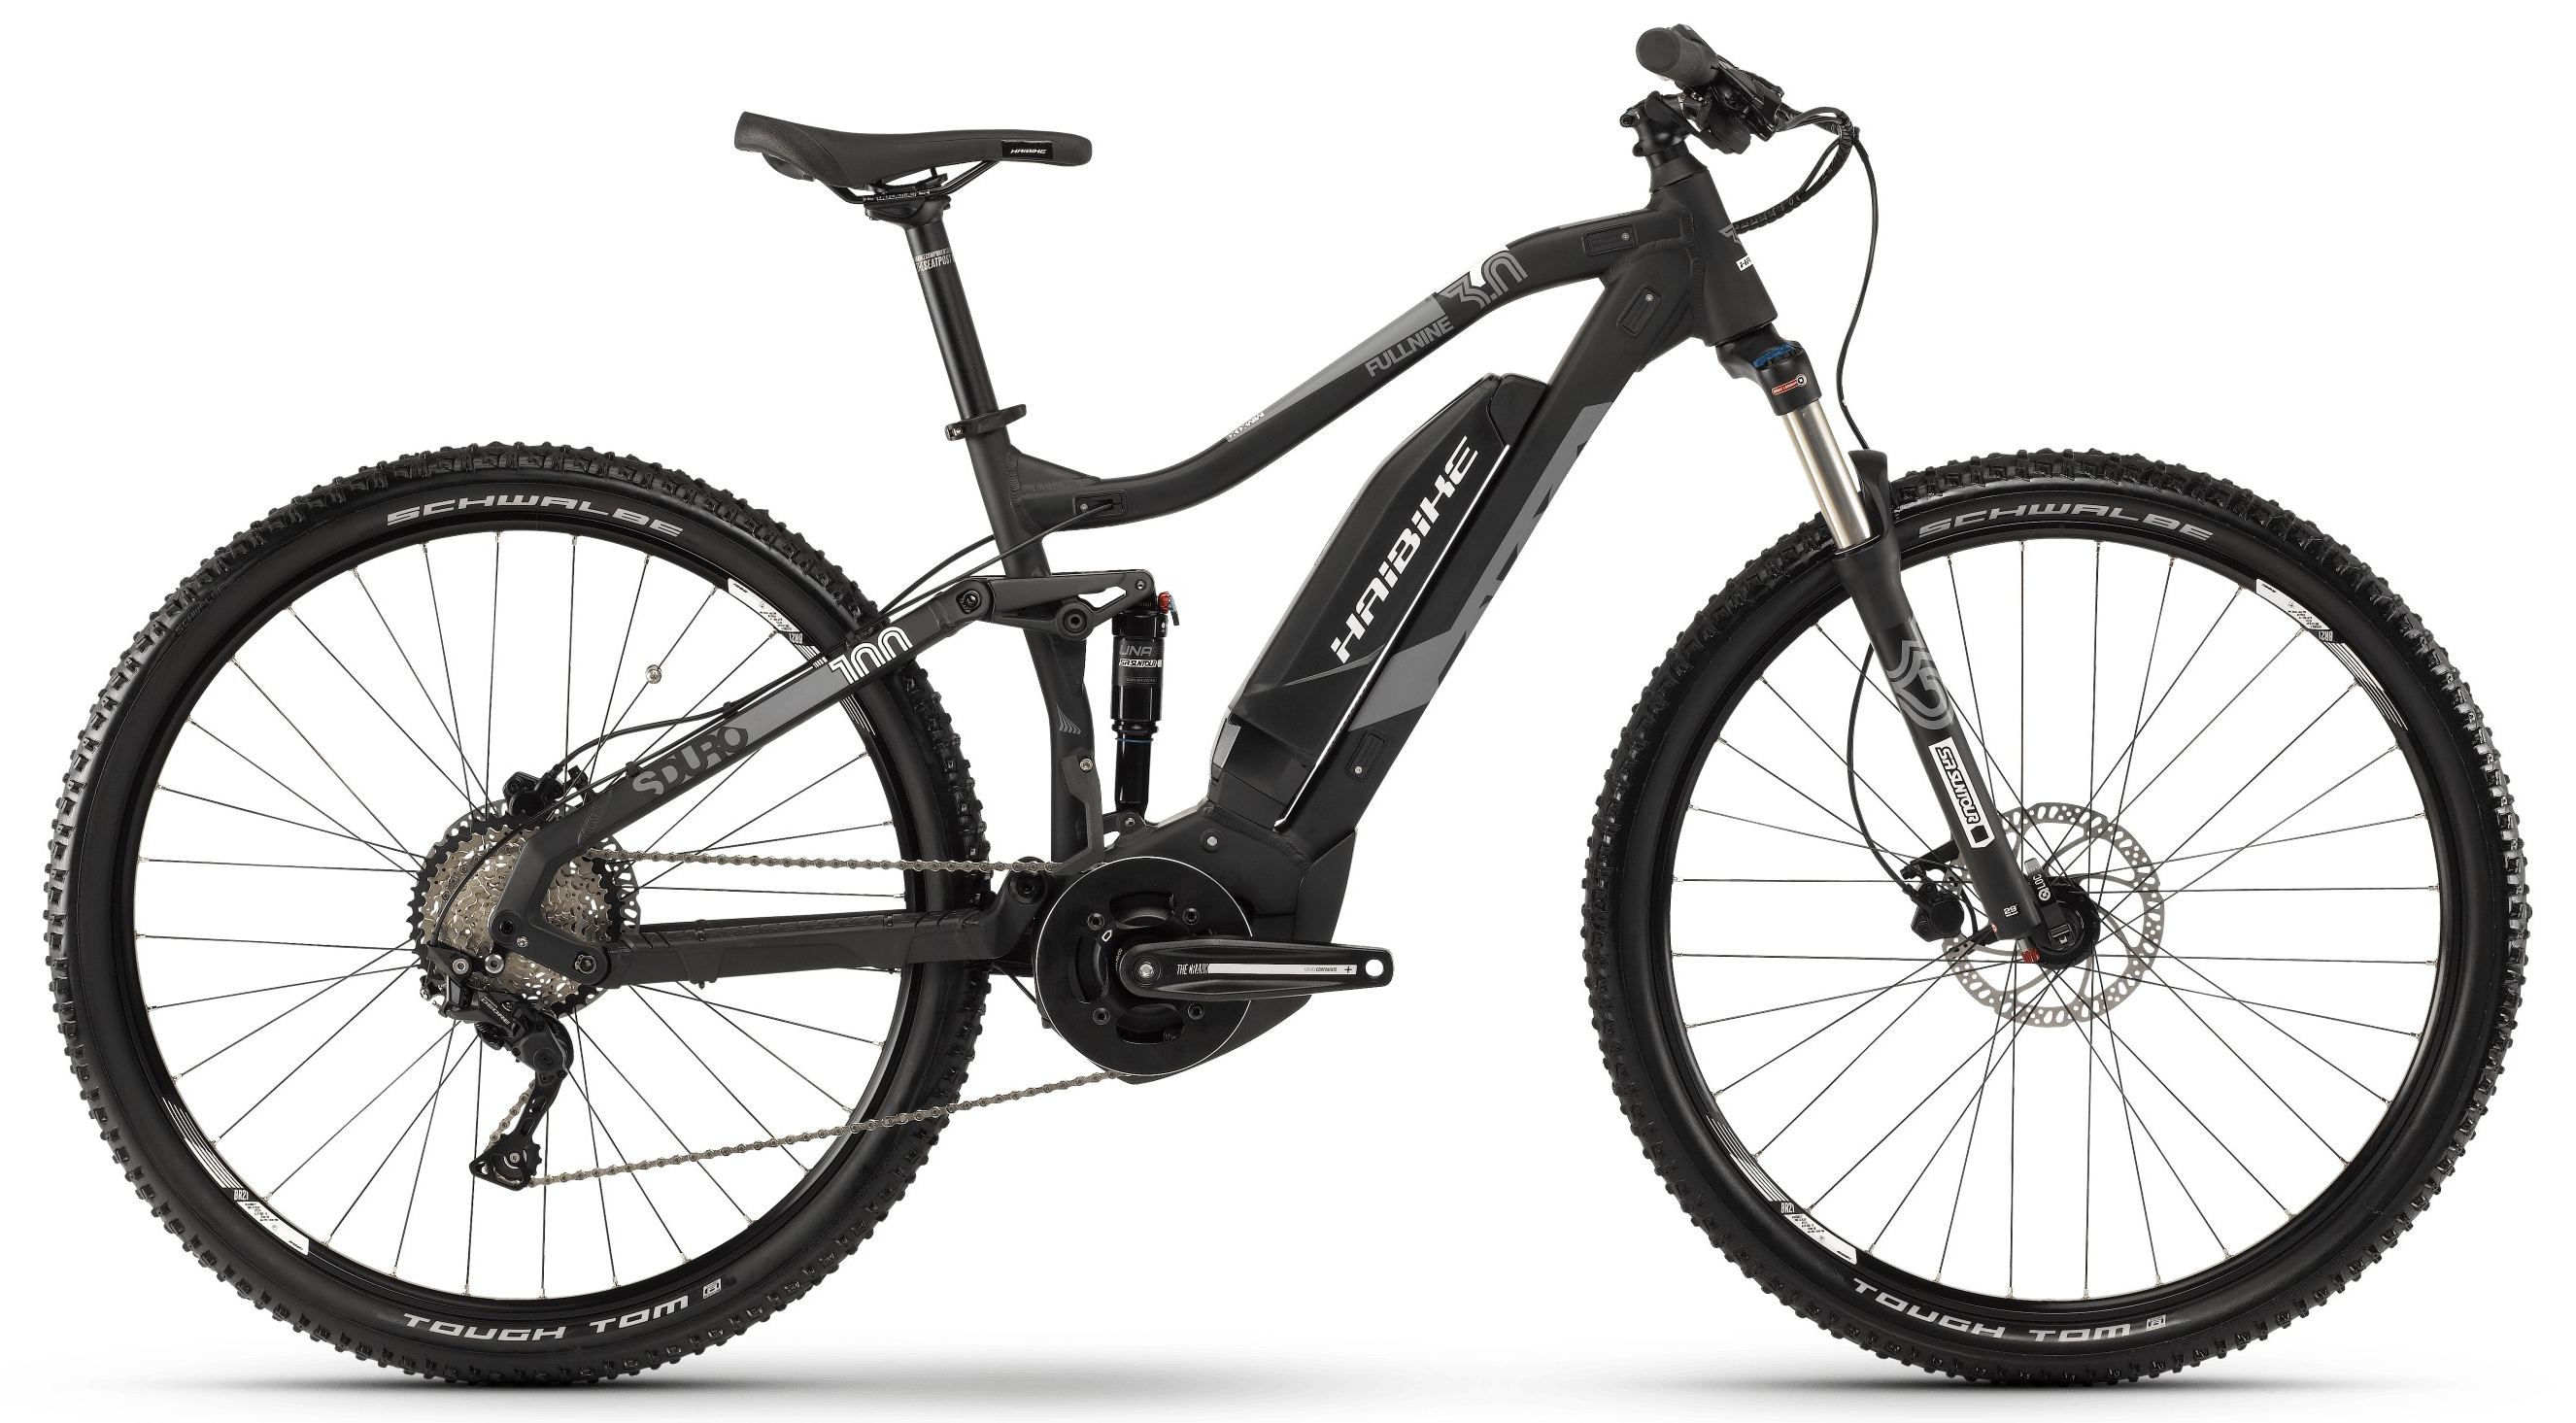 Велосипед Haibike SDURO FullNine 3.0 500Wh 10-G Deore 2019 велосипед haibike sduro trekking 4 0 he 400wh 10s deore 2018